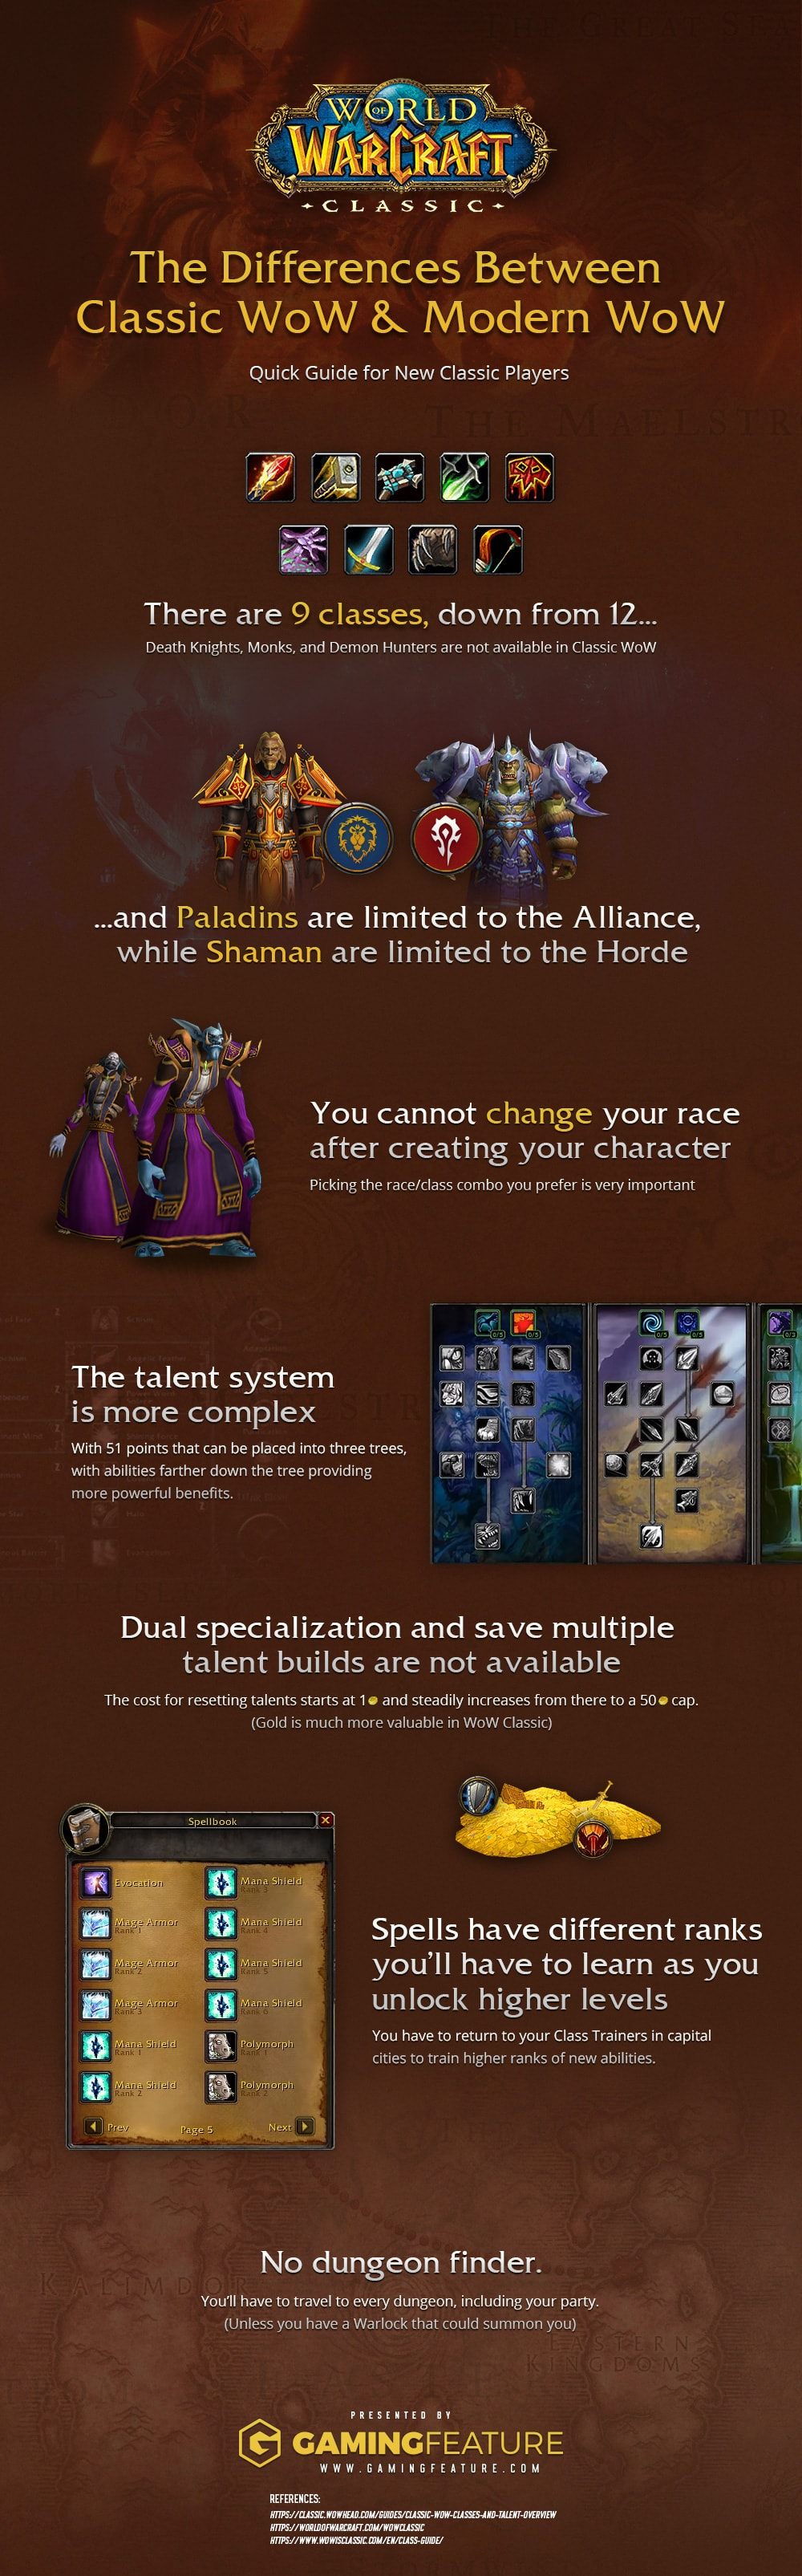 Differences Between Classic WoW Modern WoW